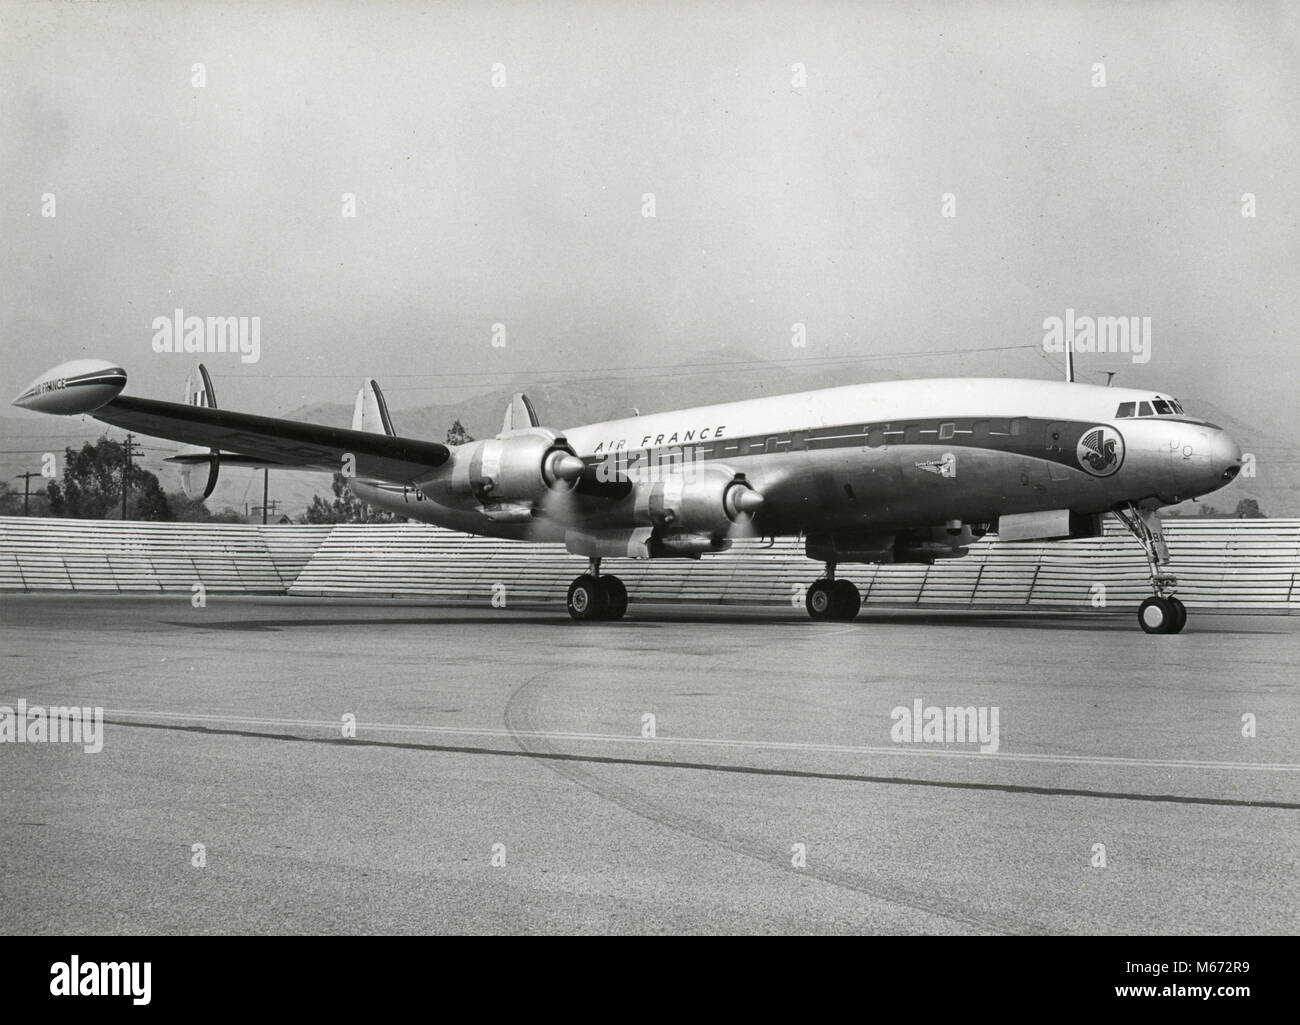 Air France Lockheed L-1049 Super Constellation, 1950s